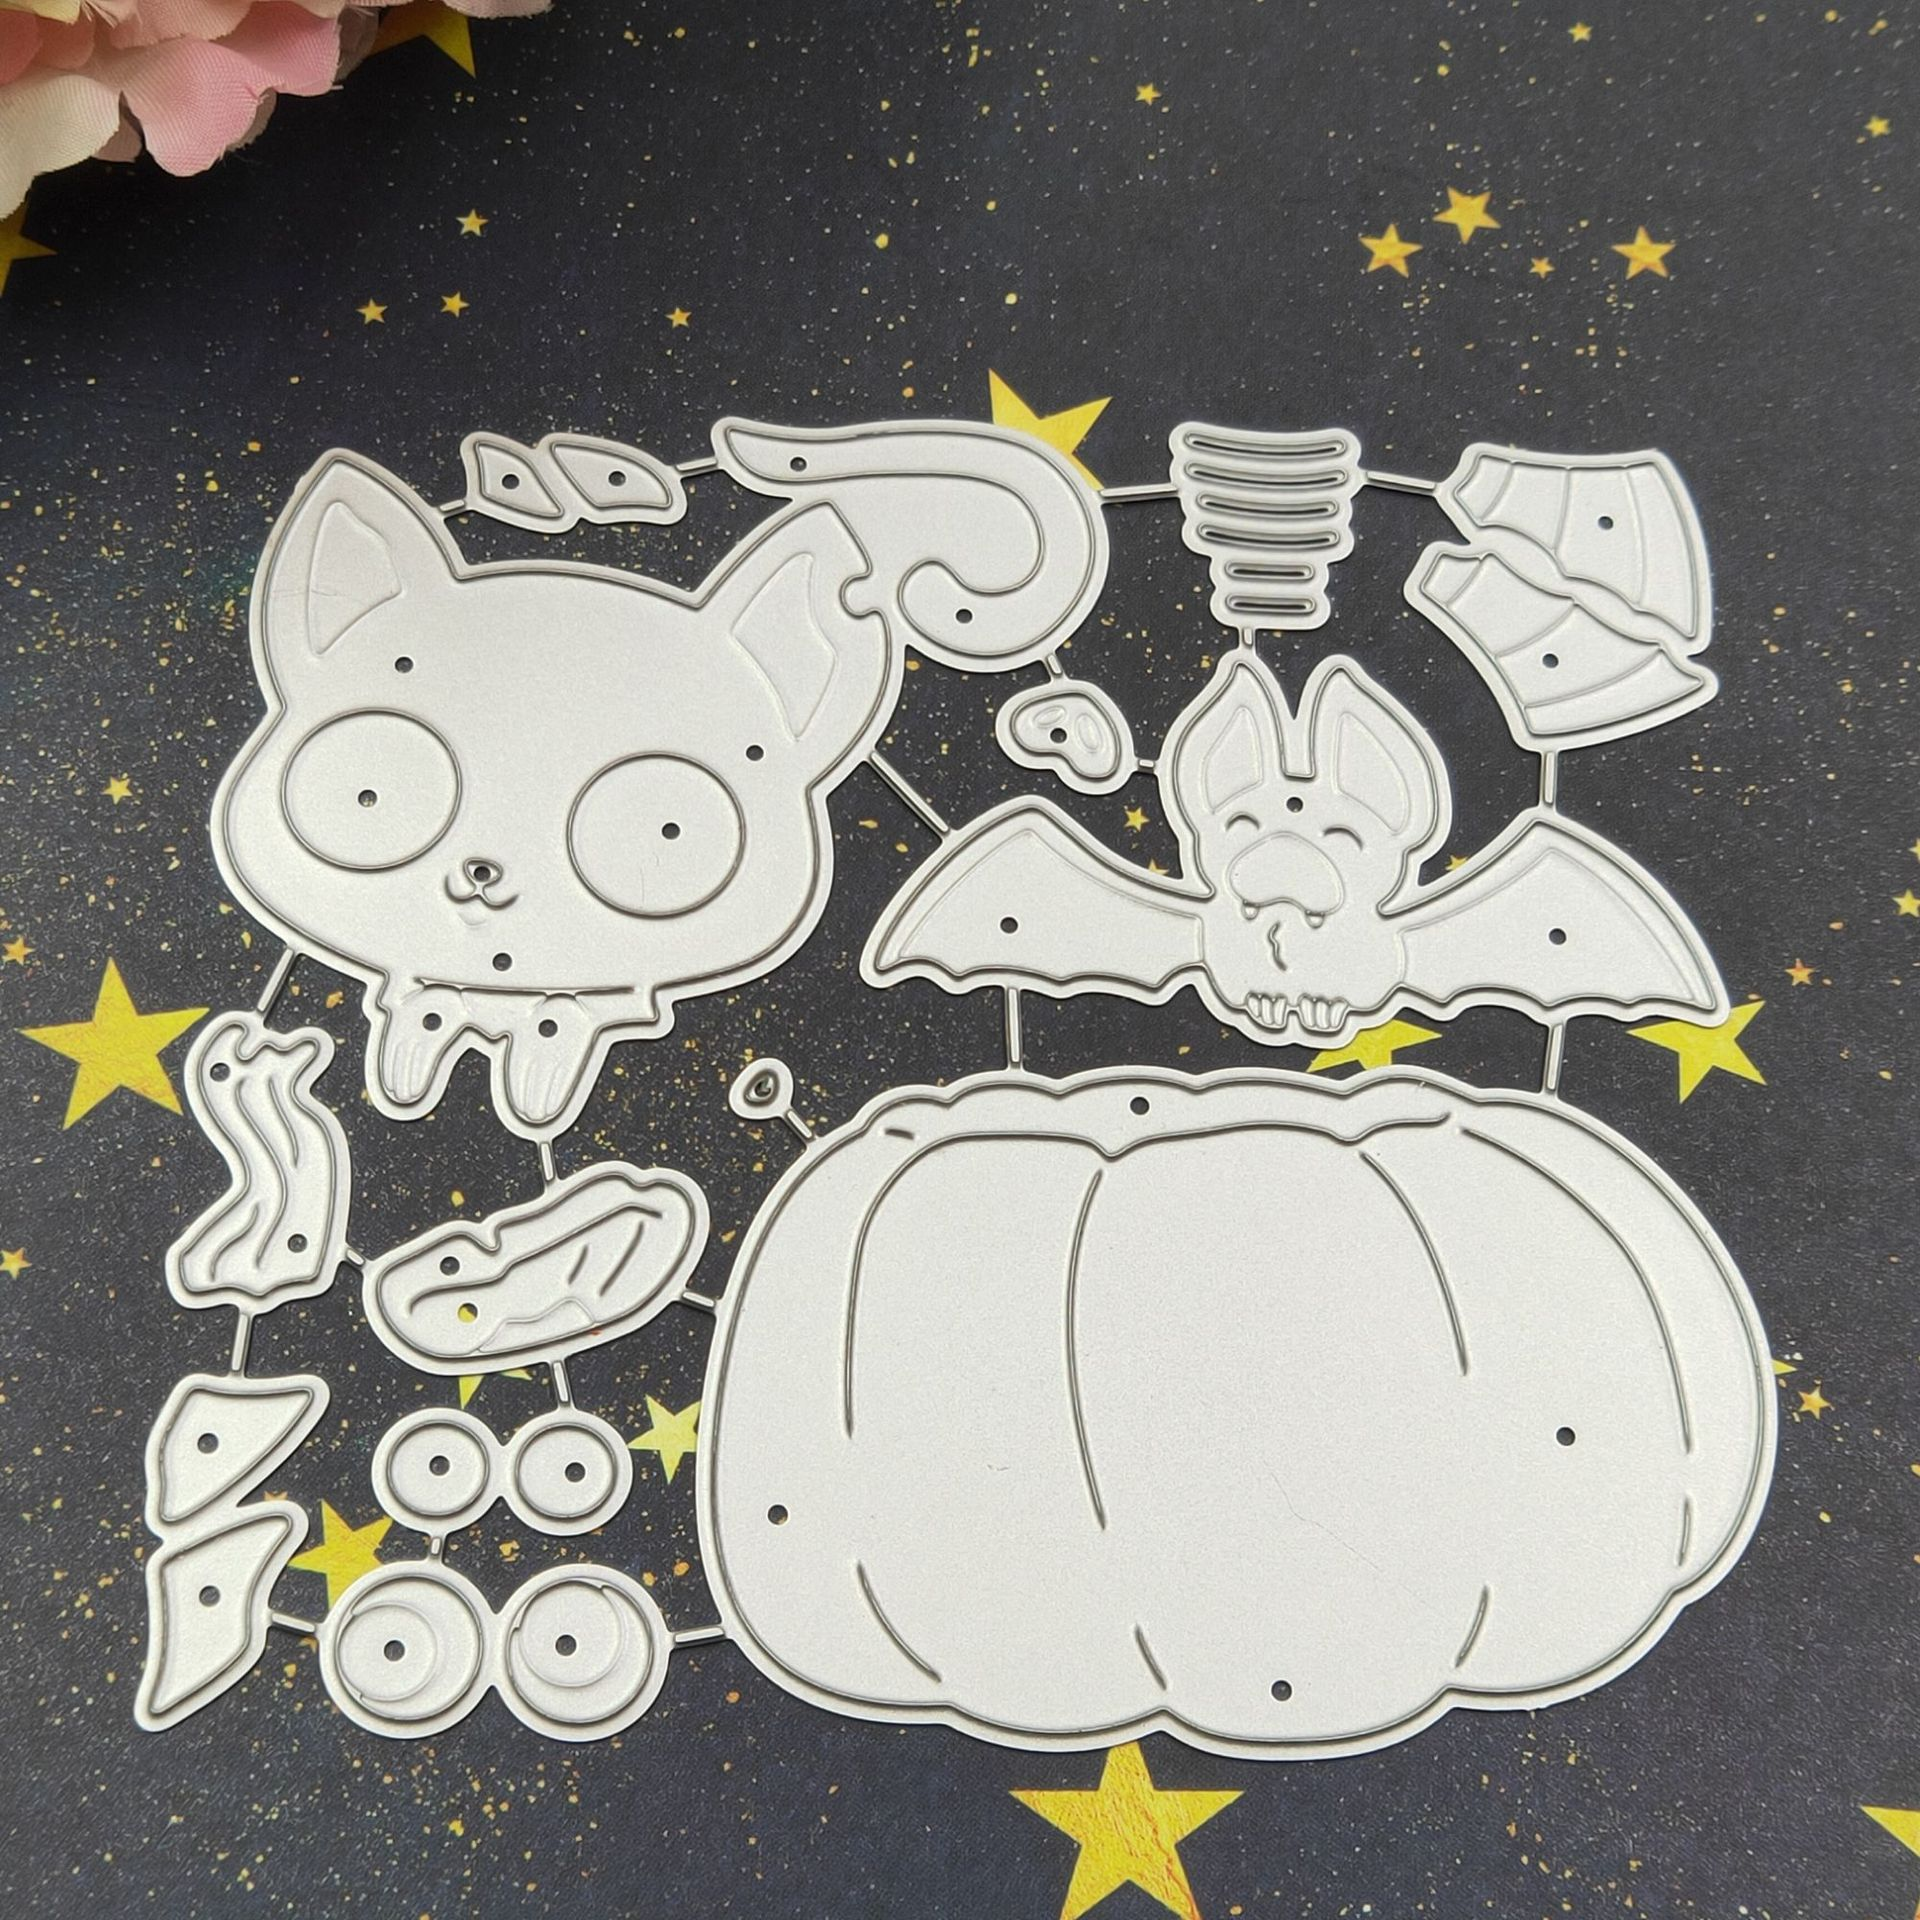 3-1804489 2.4 by 2.3 Inches Pumpkin Bat Metal Cutting Dies for Scrapbooking Card Making Christmas Valentines Day Die Cuts